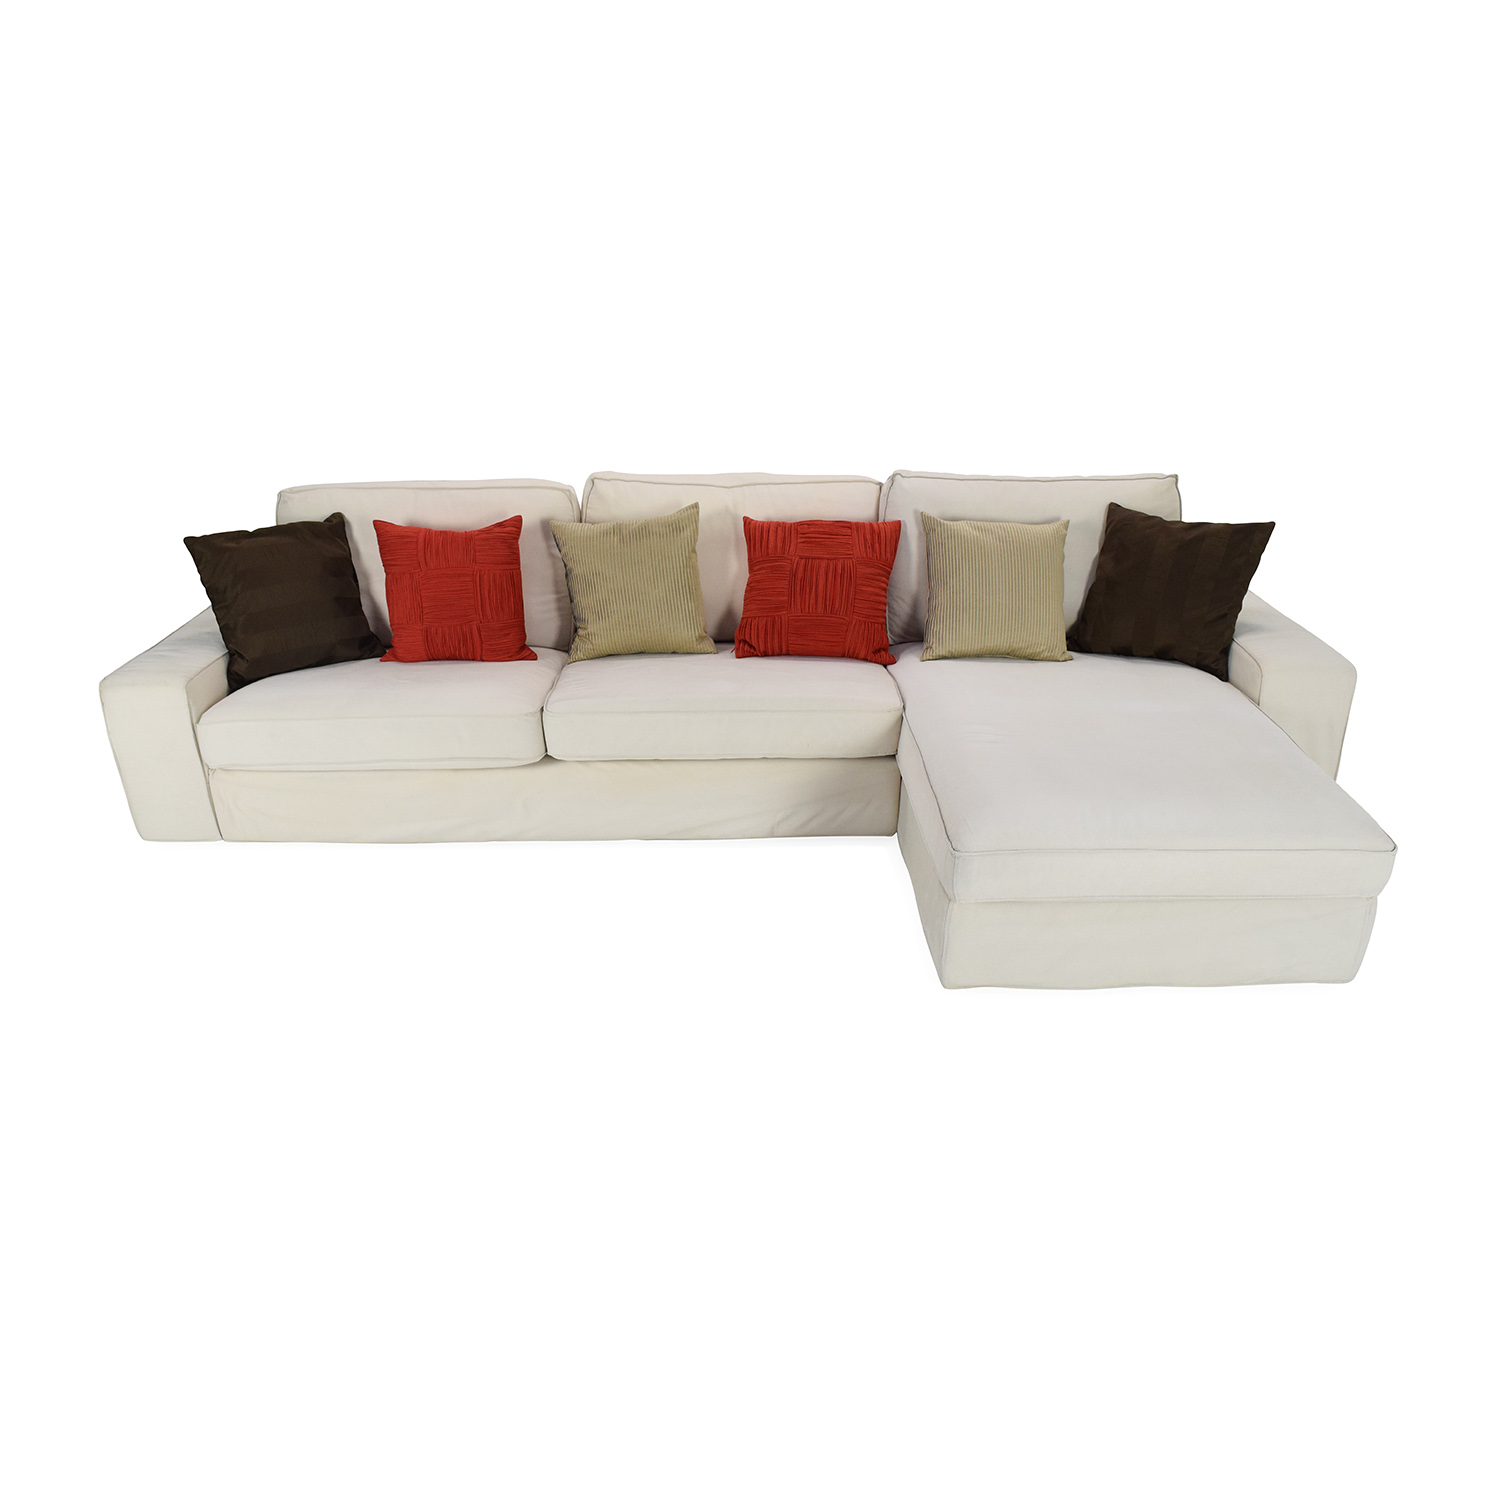 dunham sofa furniture images hd 67 off l shaped cream leather sectional sofas